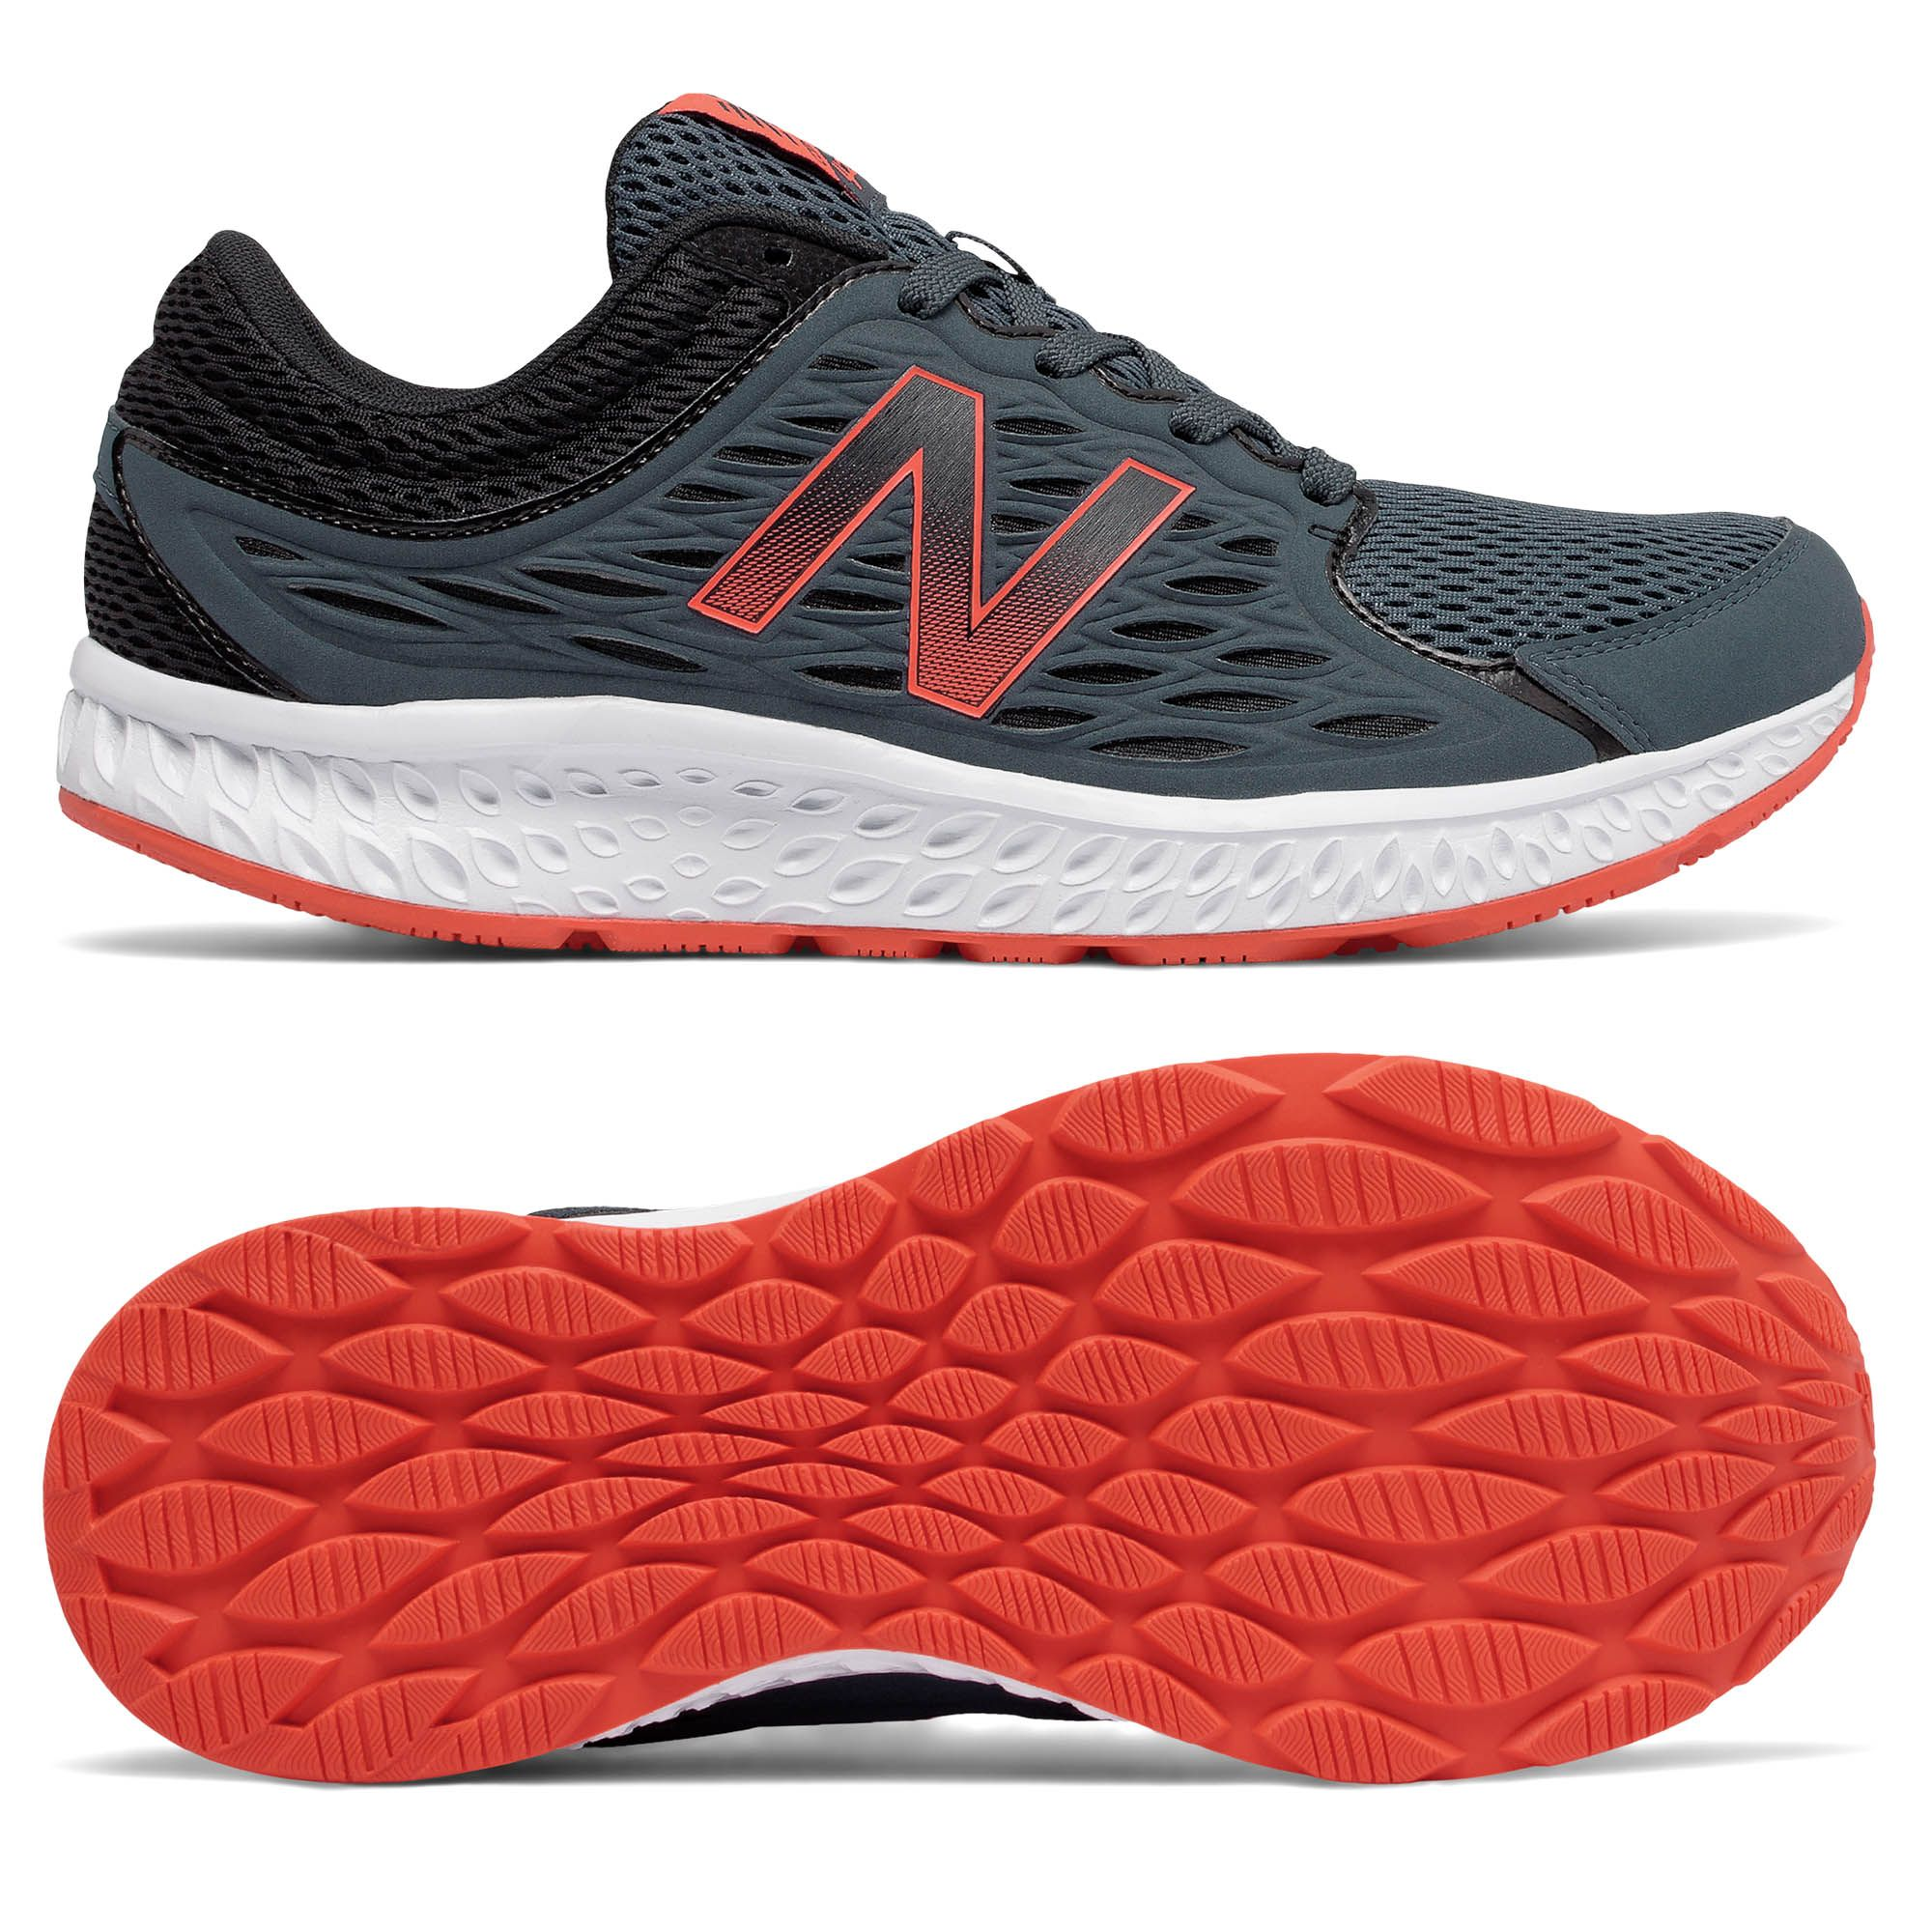 new balance 420 v3 mens running shoes. Black Bedroom Furniture Sets. Home Design Ideas